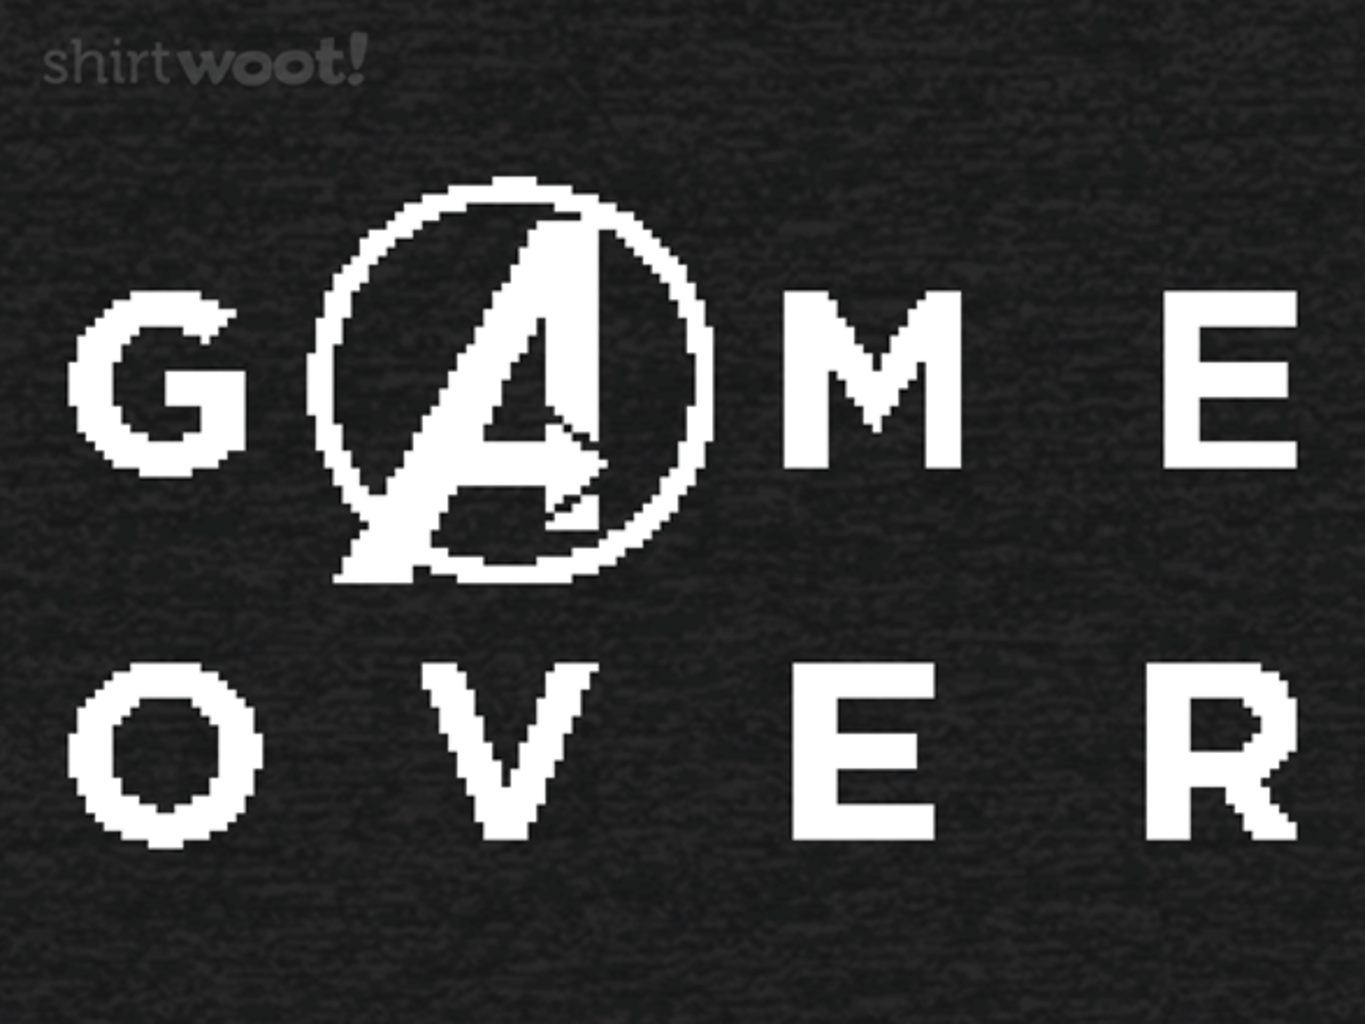 Woot!: Final Game Over